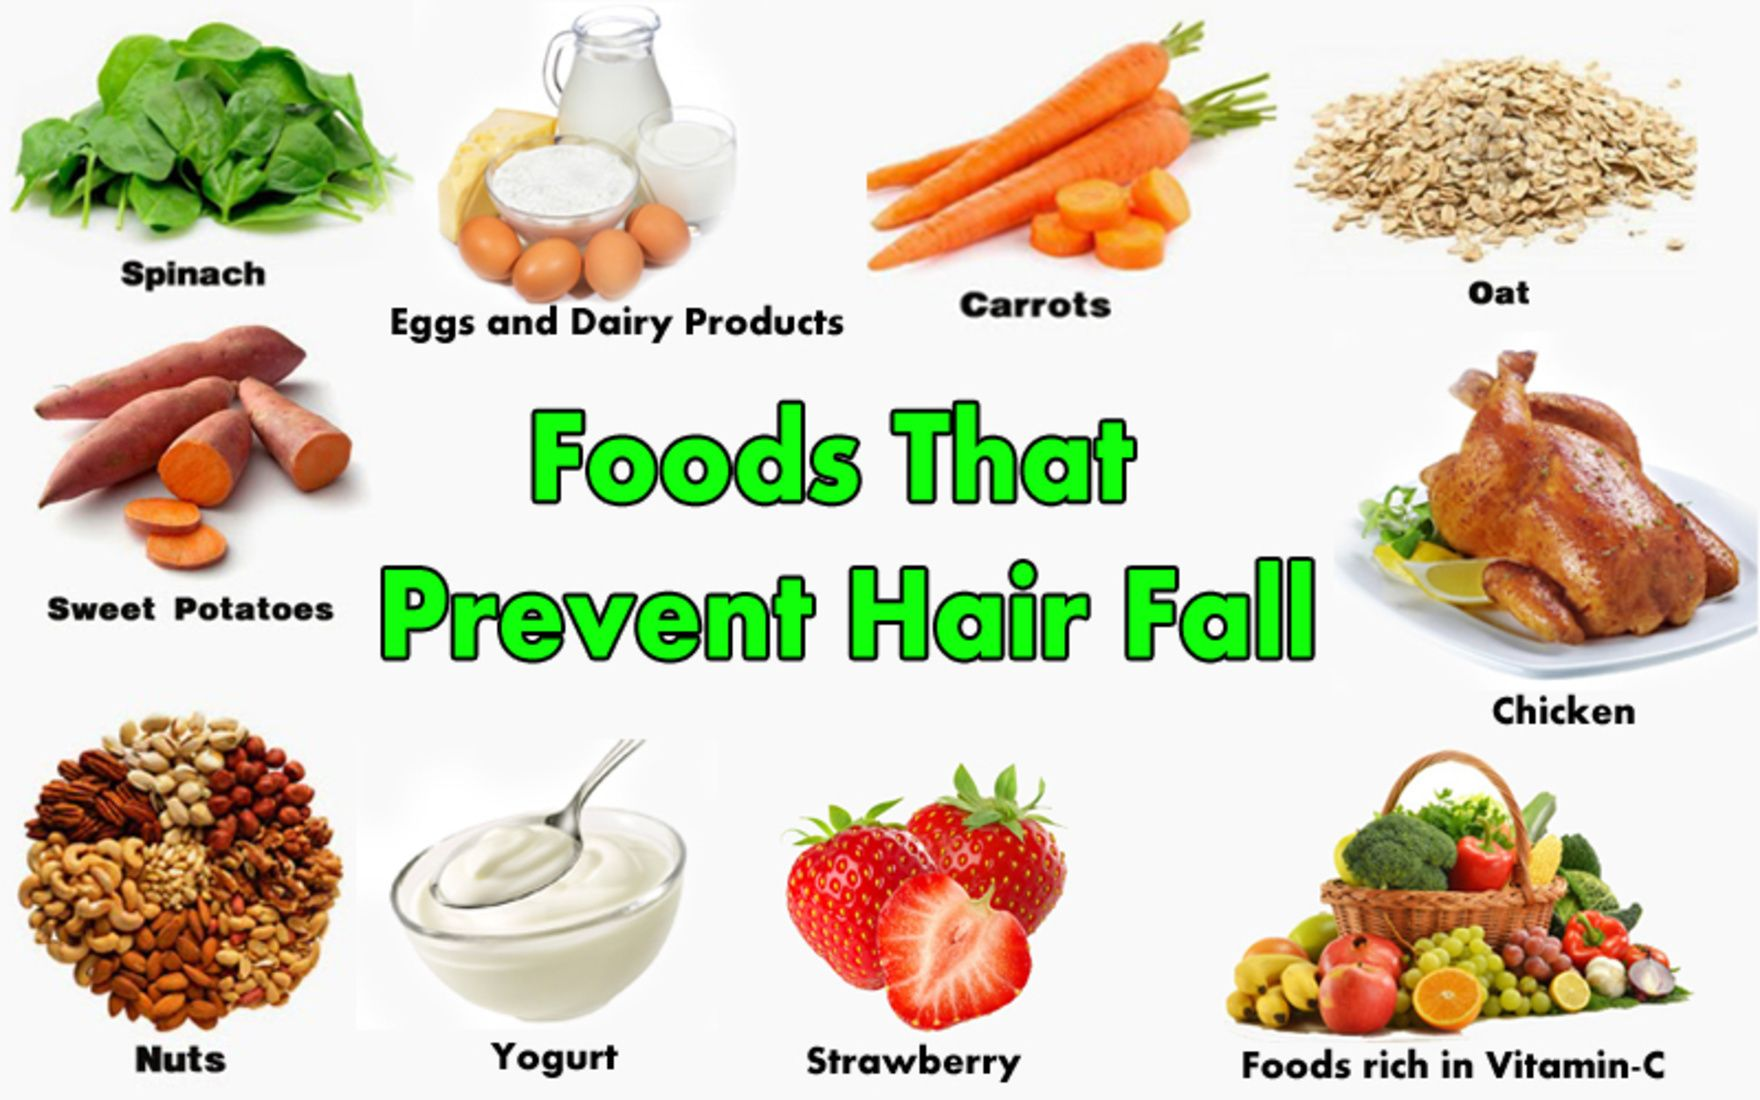 Try This Foods To Prevent Hair Fall Naturally Visit Gohairlosstreatment Com Hairloss Hairlosssolution Hairlosstreatment Hairlosshelp Hairlossprevention